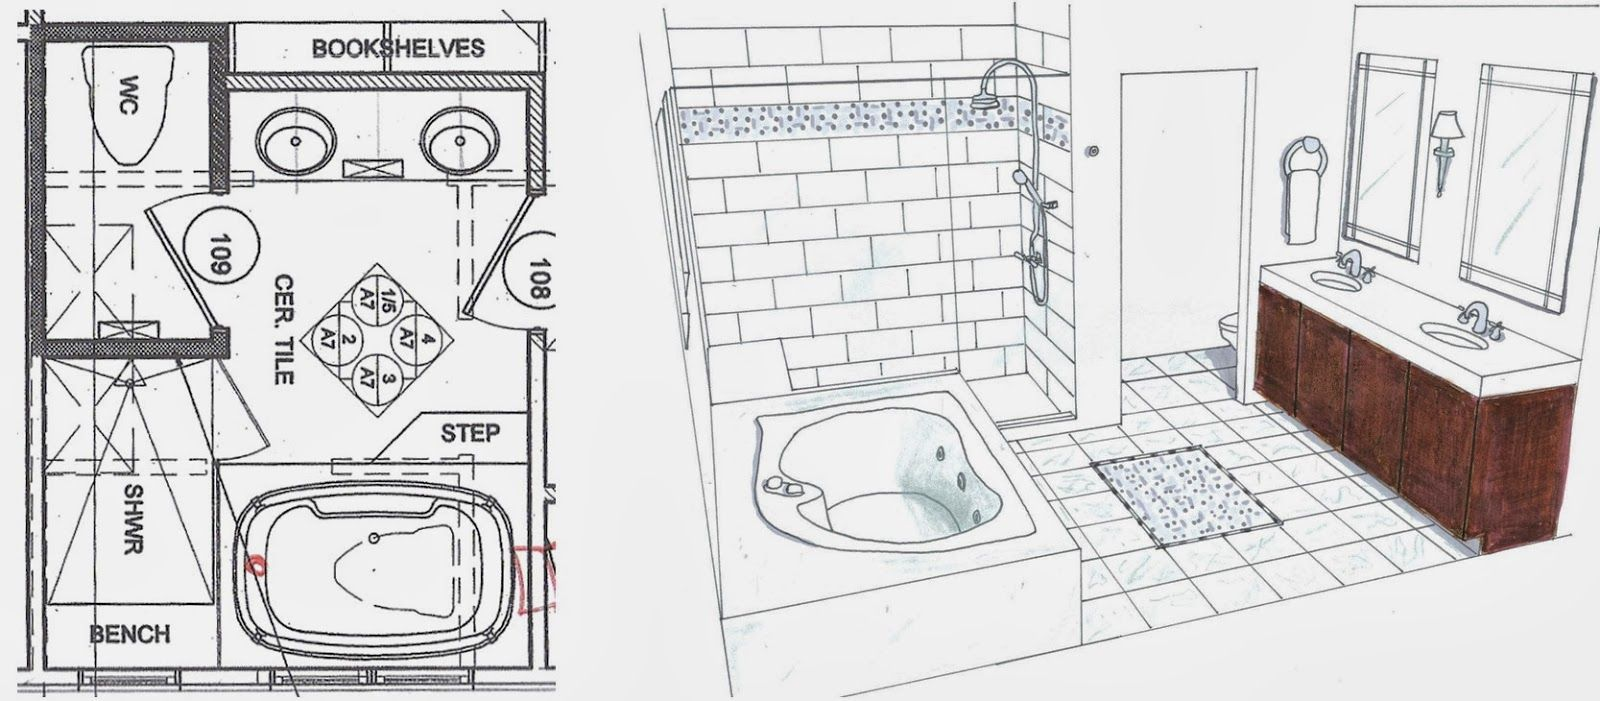 Exactly These Bathroom Floor Plans Are Going To Make The Decoration Inside Looks So Natural Description From Myimmigration Lawyer